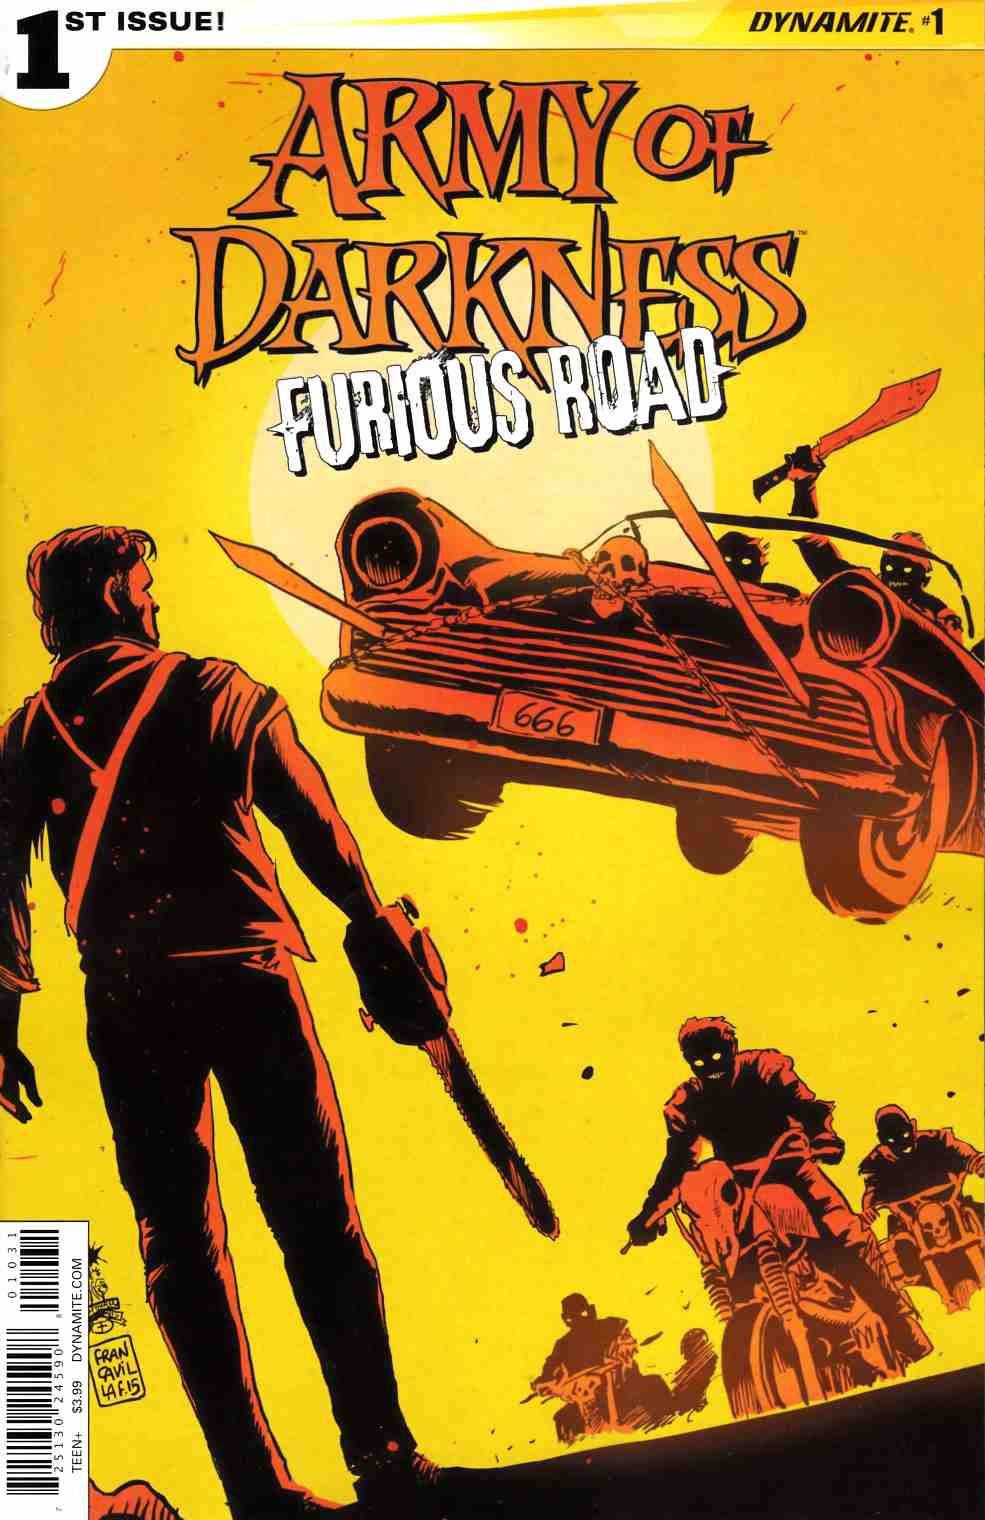 Army of Darkness Furious Road #1 Cover C- Francavilla [Dynamite Comic]